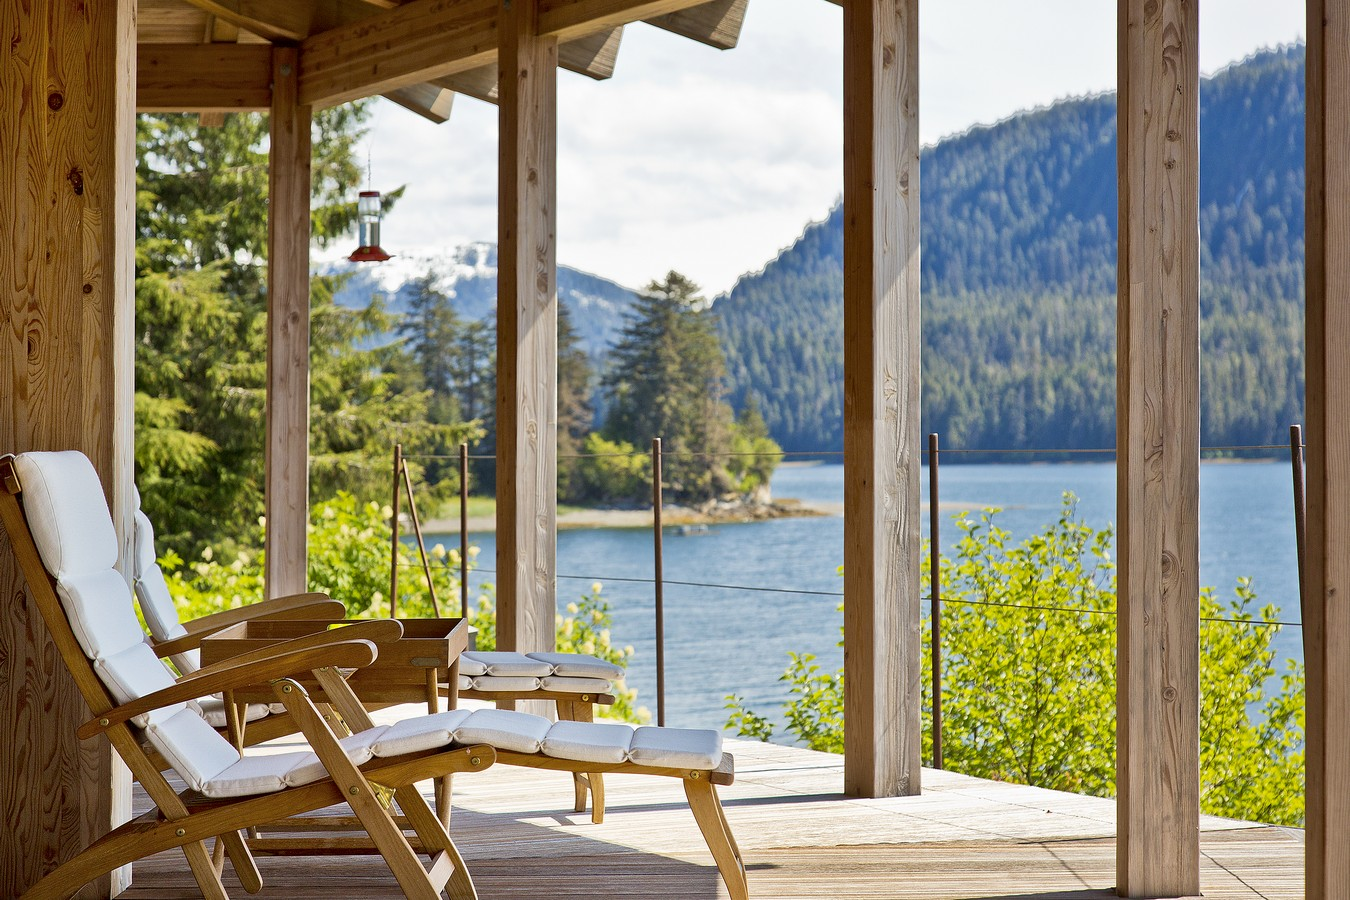 PICTURED ABOVE:   The outdoor living spaces at Hidden Bay Retreat include more than 2,000 sq. ft. of covered terraces with inspiring views of Hood Bay and the wildlife theater that is Southeast Alaska.